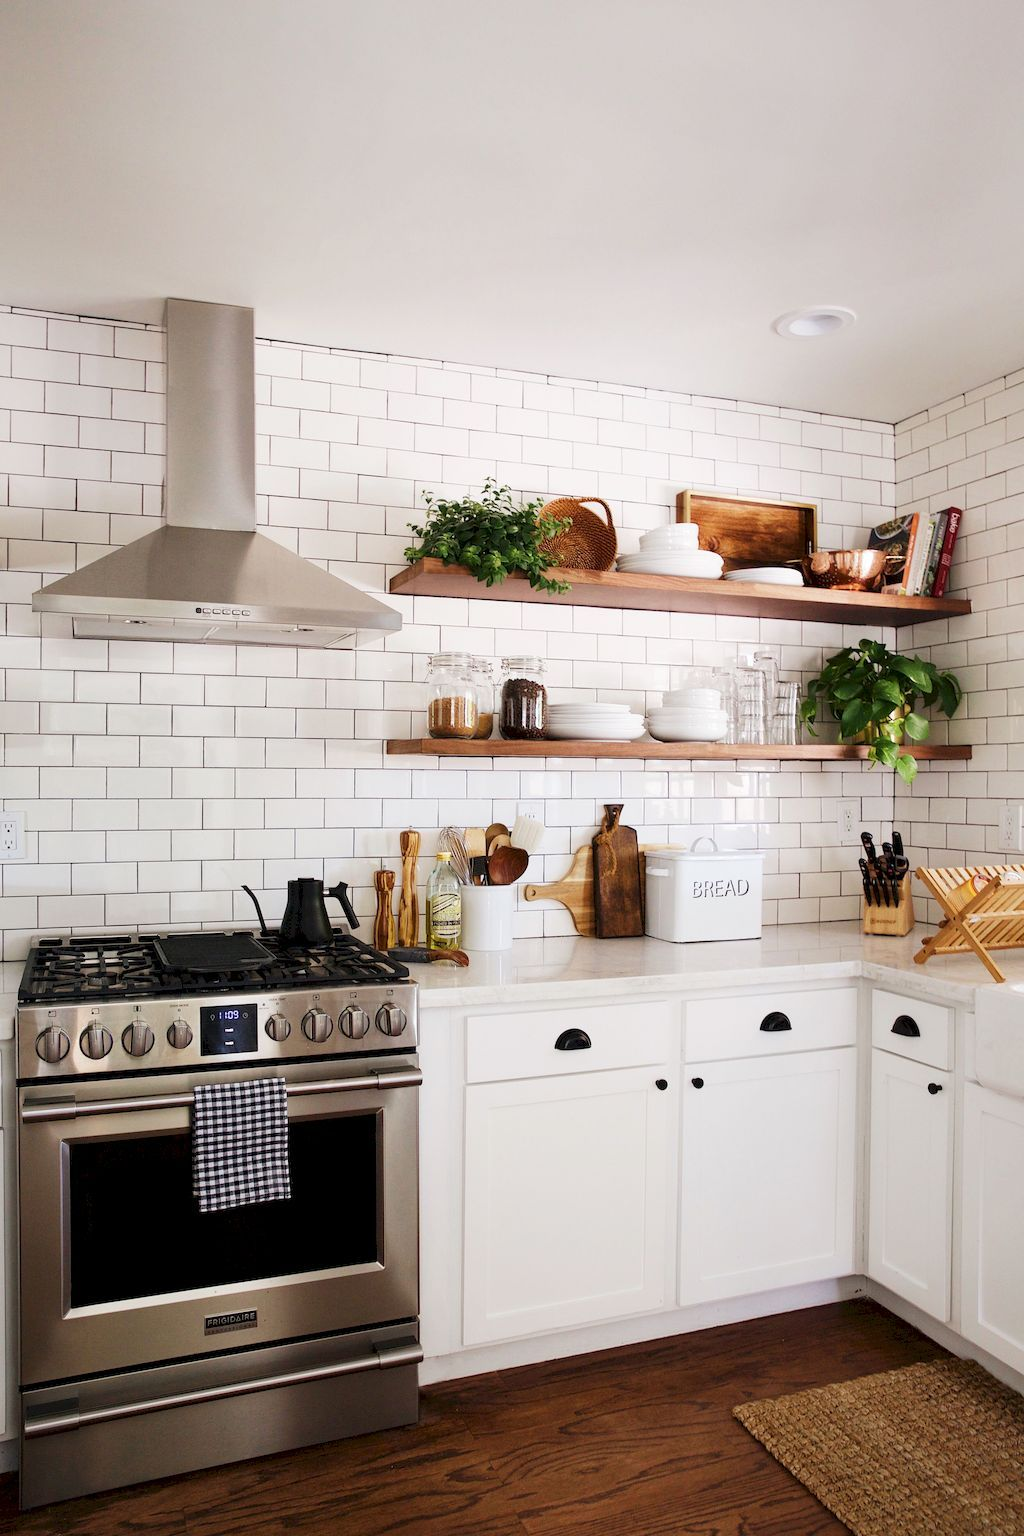 Nice 40 Awesome Small Kitchen Remodel Ideas  Https://decorecor.com/40 Awesome Small Kitchen Remodel Ideas